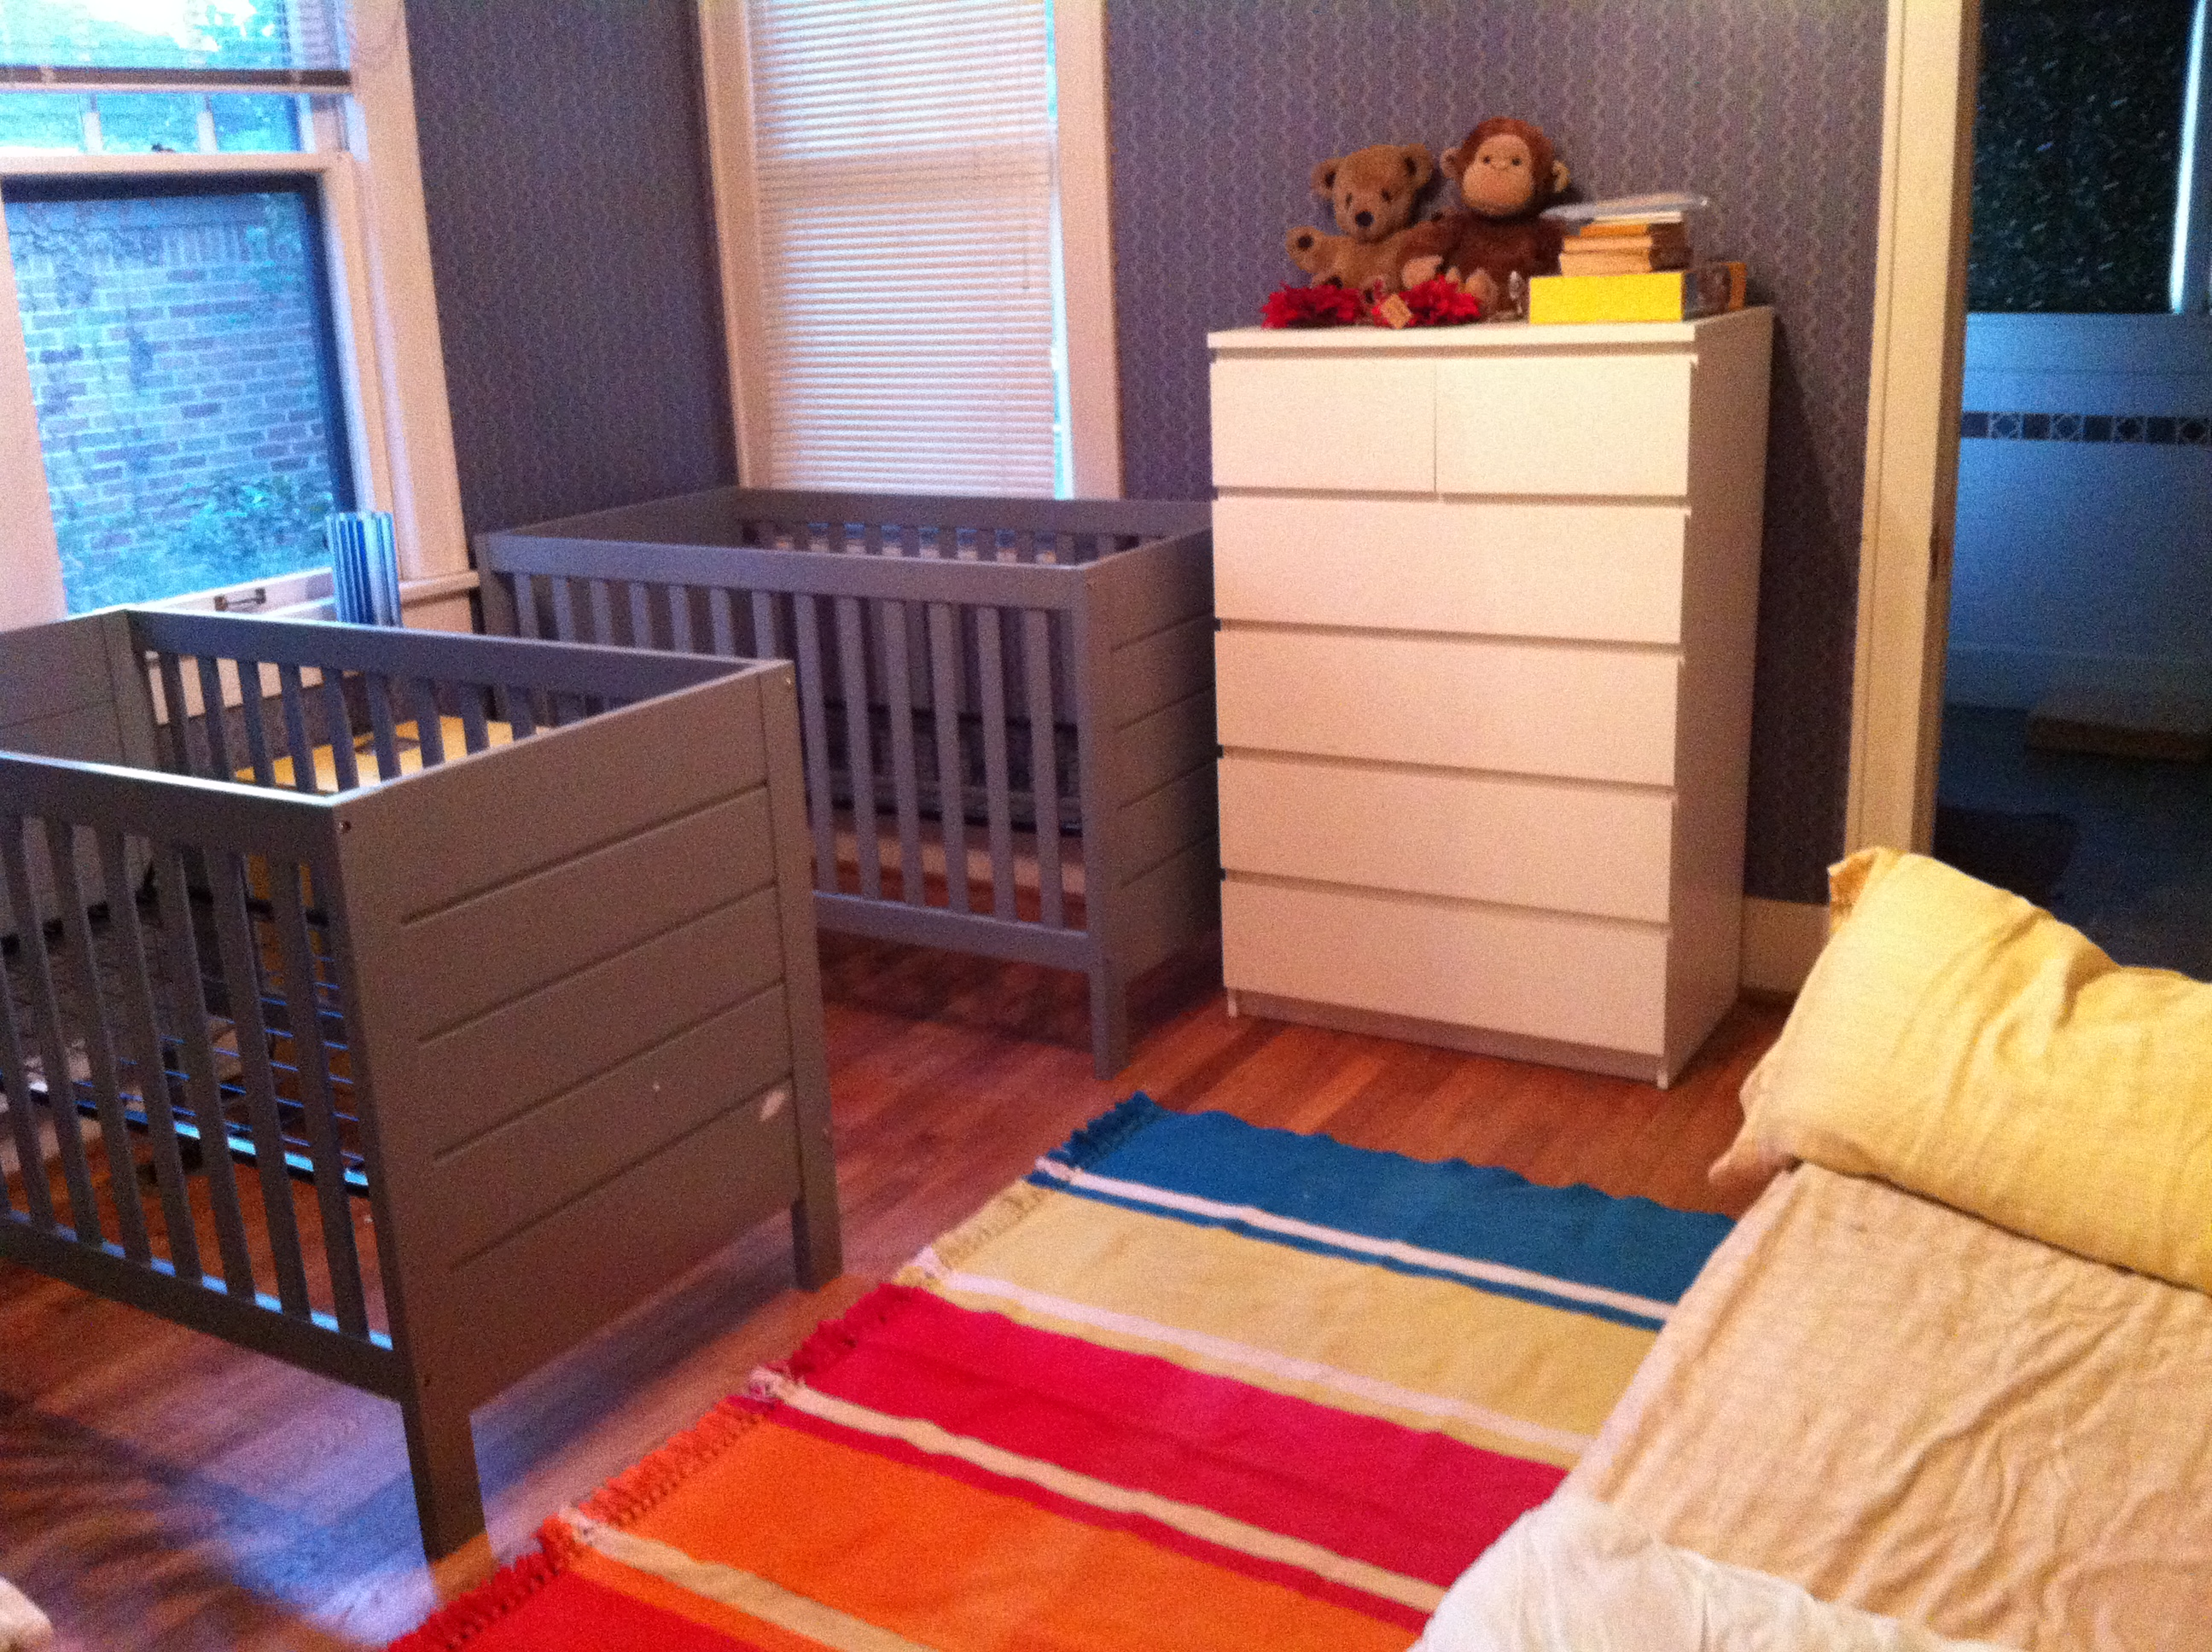 fit next star in with crib including cribs dresser at the plush dsc bedroom a cinderella carriage master tables wardrobe armoire princess side frozen king features gorgeously wars finished baby to mattress furnishings bed and huge florida midnight suite